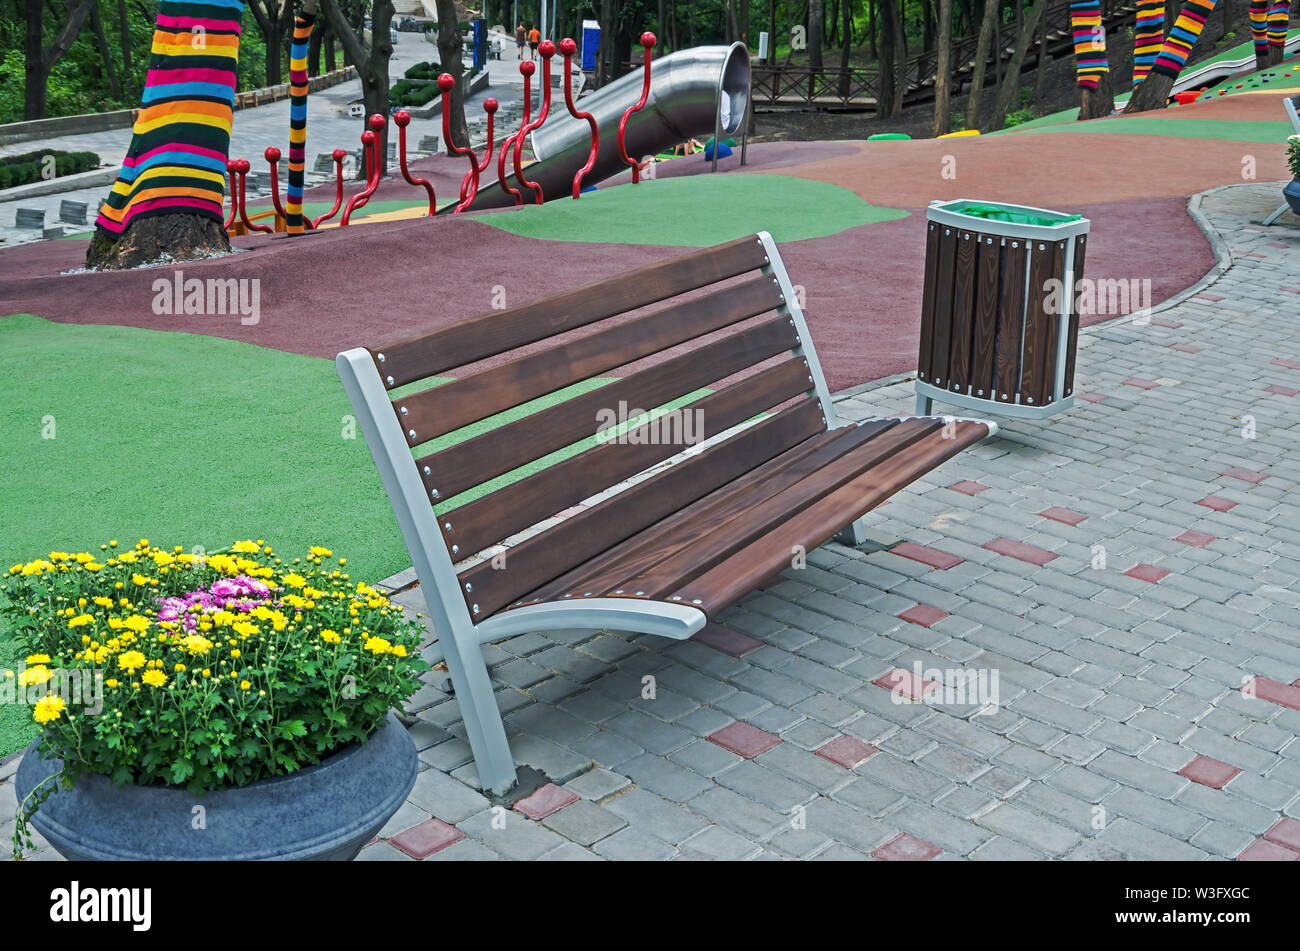 Recreation area with bench, a flower pot and trash can at playground in the city park - Stock Image